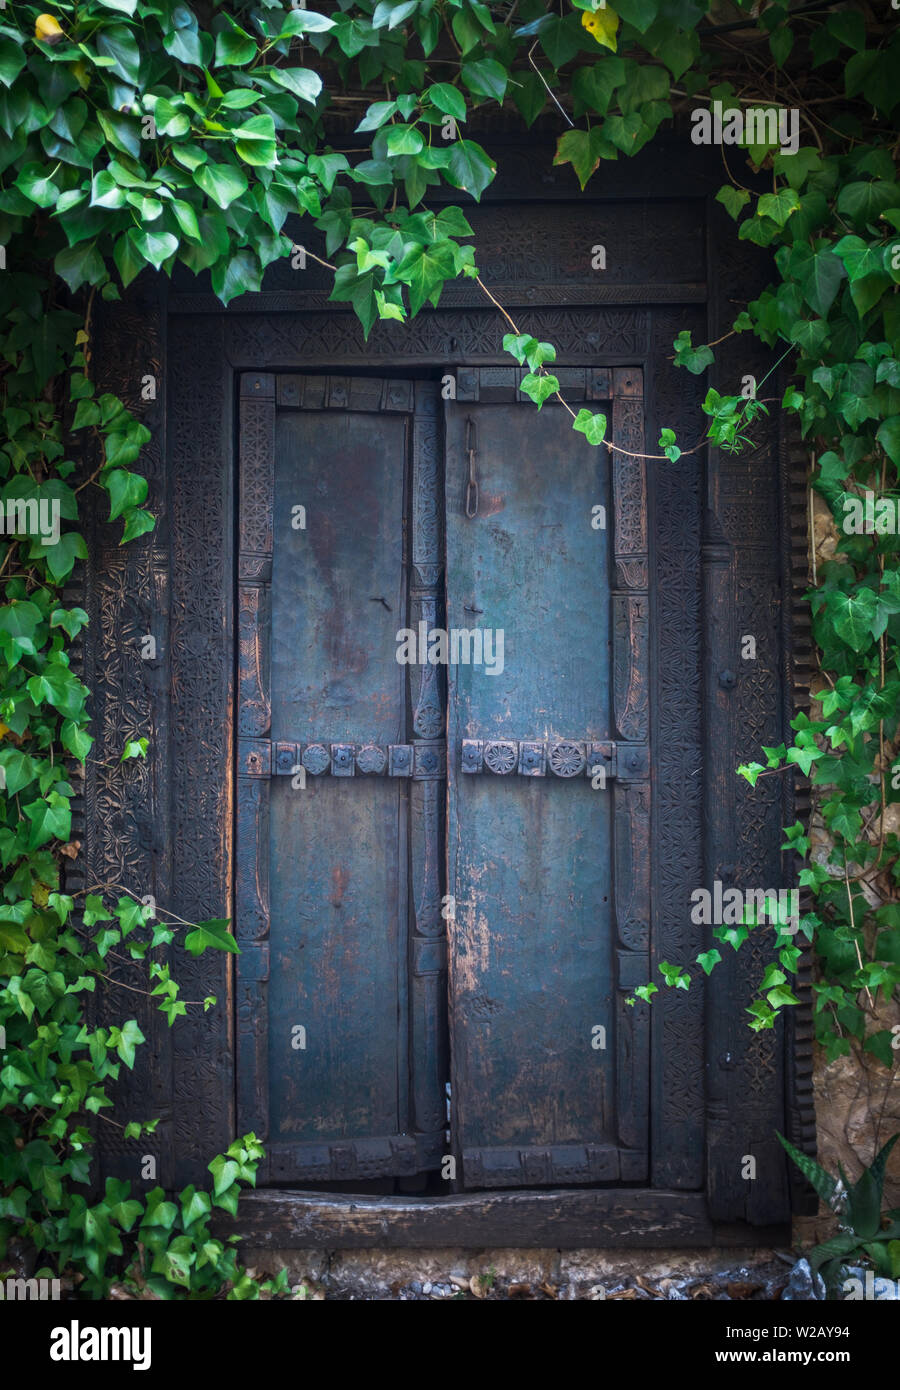 Ivy Surrounding An Old Wooden Door To A Secret Garden At An Old Mansion House Stock Photo